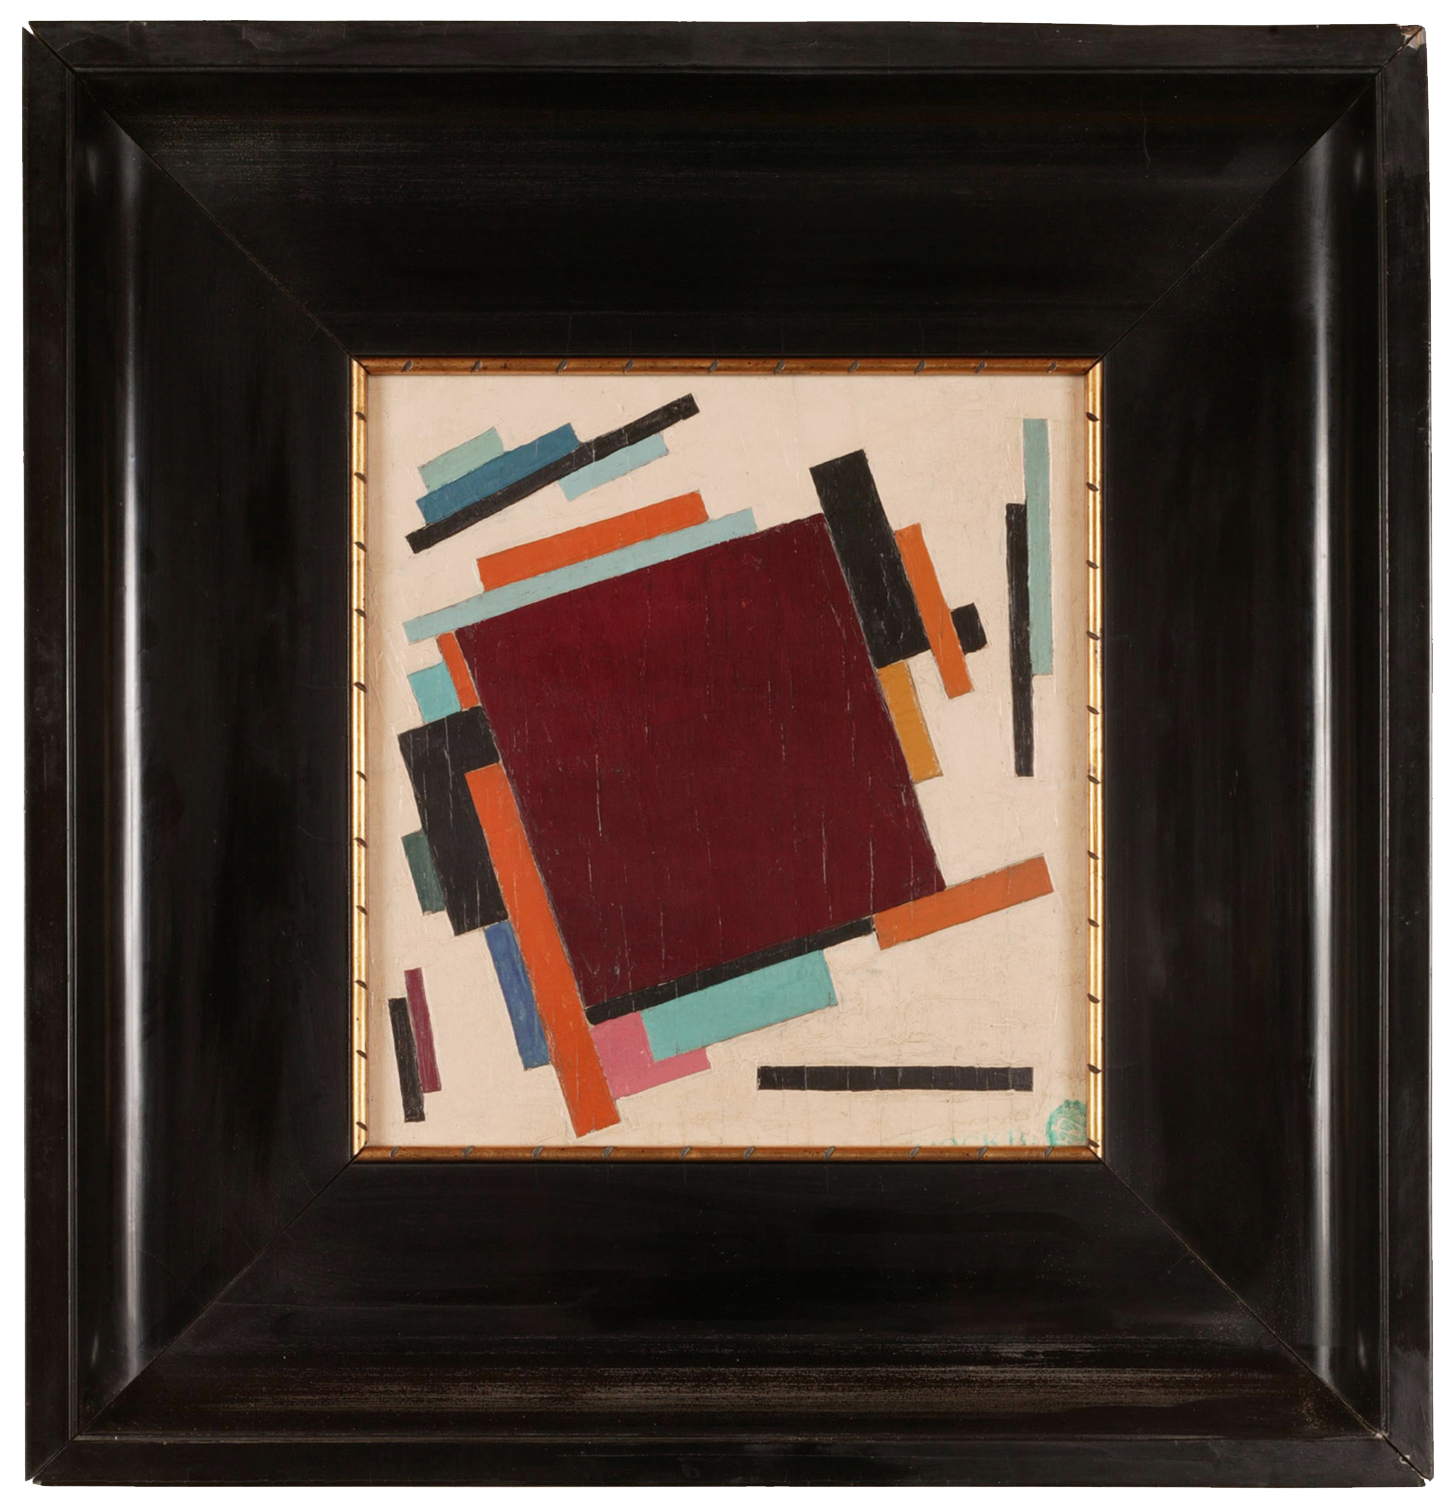 Unattributed. Unsigned.In the style of Kasimir Malevich   Stamp in Russian, lower right, reads MOCKBA.  Second painting on reverse depicting interior of room.   Oil on plywood. 28 x 28 cm.